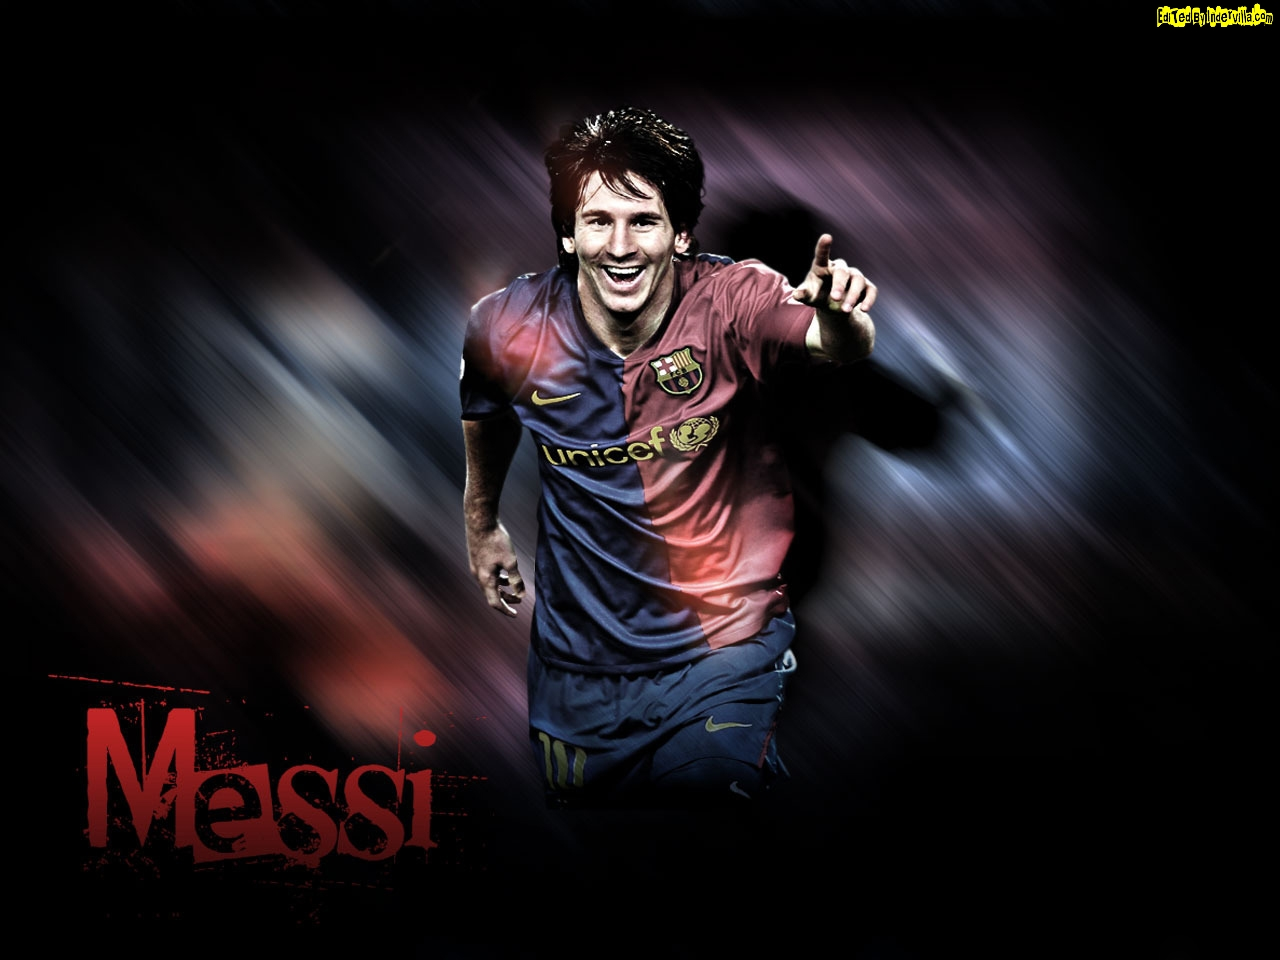 lionel messi soccer hd hd images wallpapers hd image 1280x960